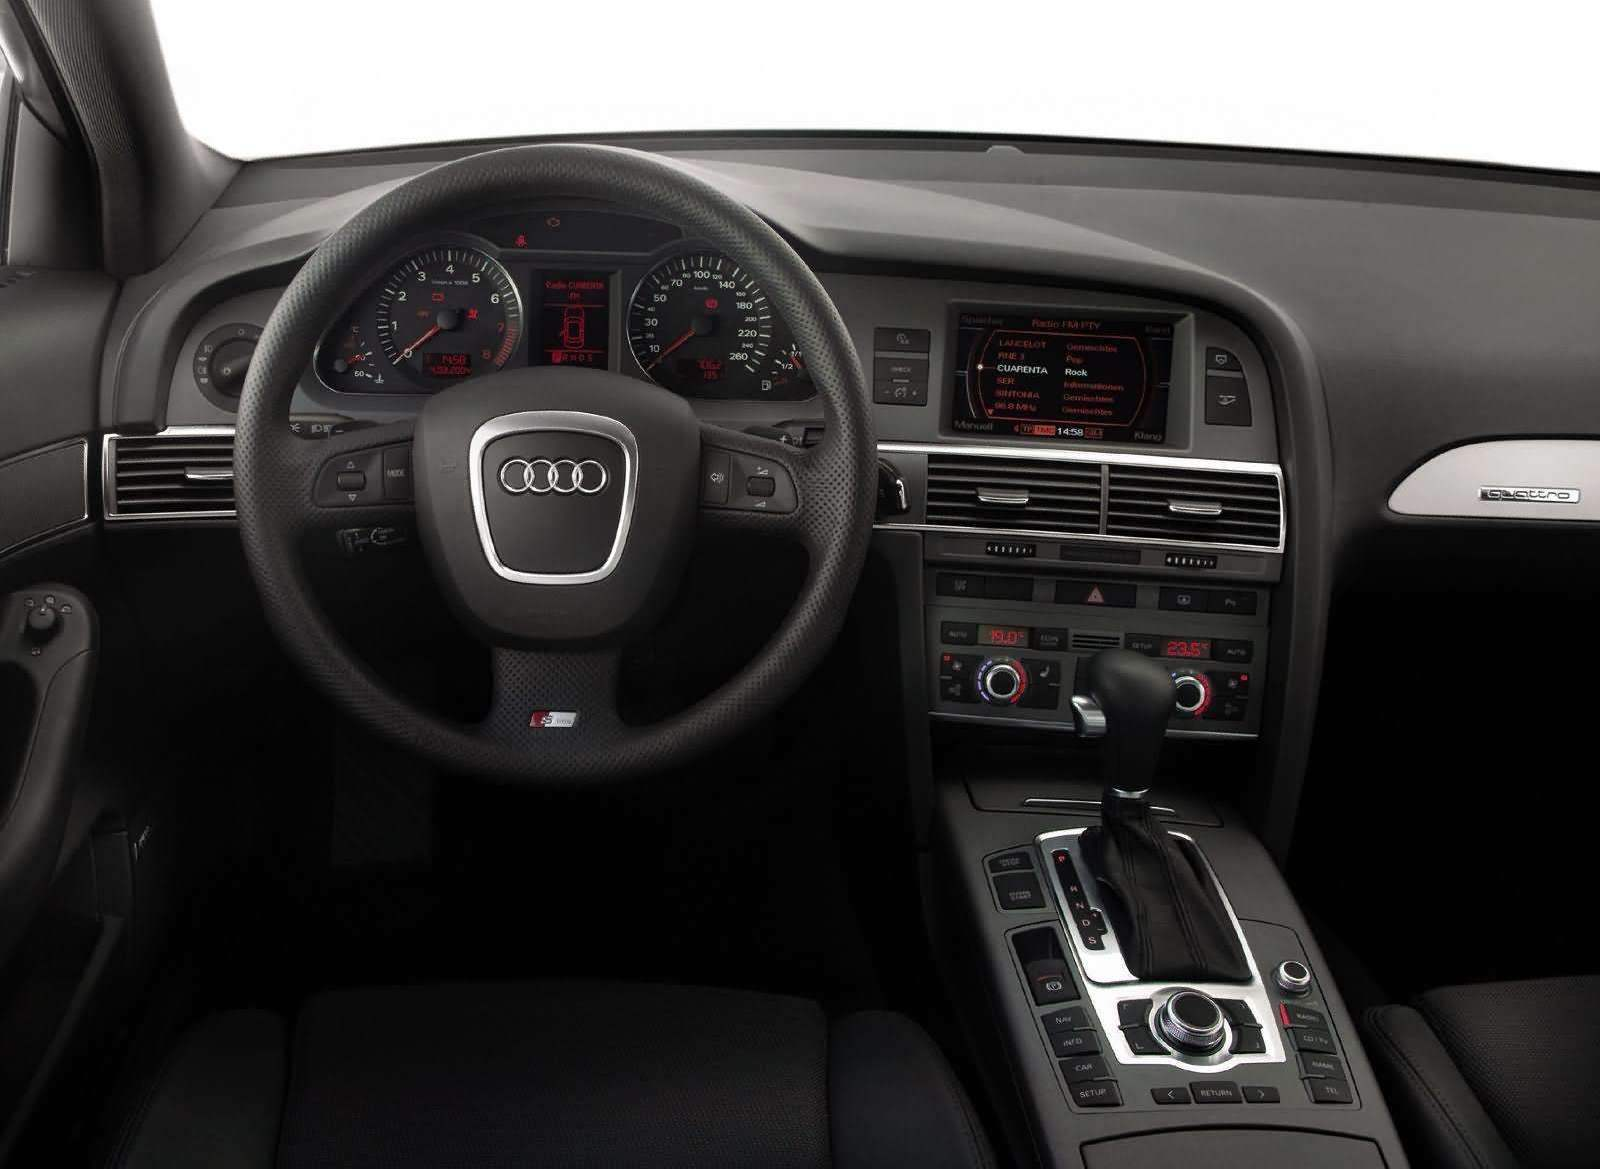 Dashboard and steering wheel of the AUDI A6